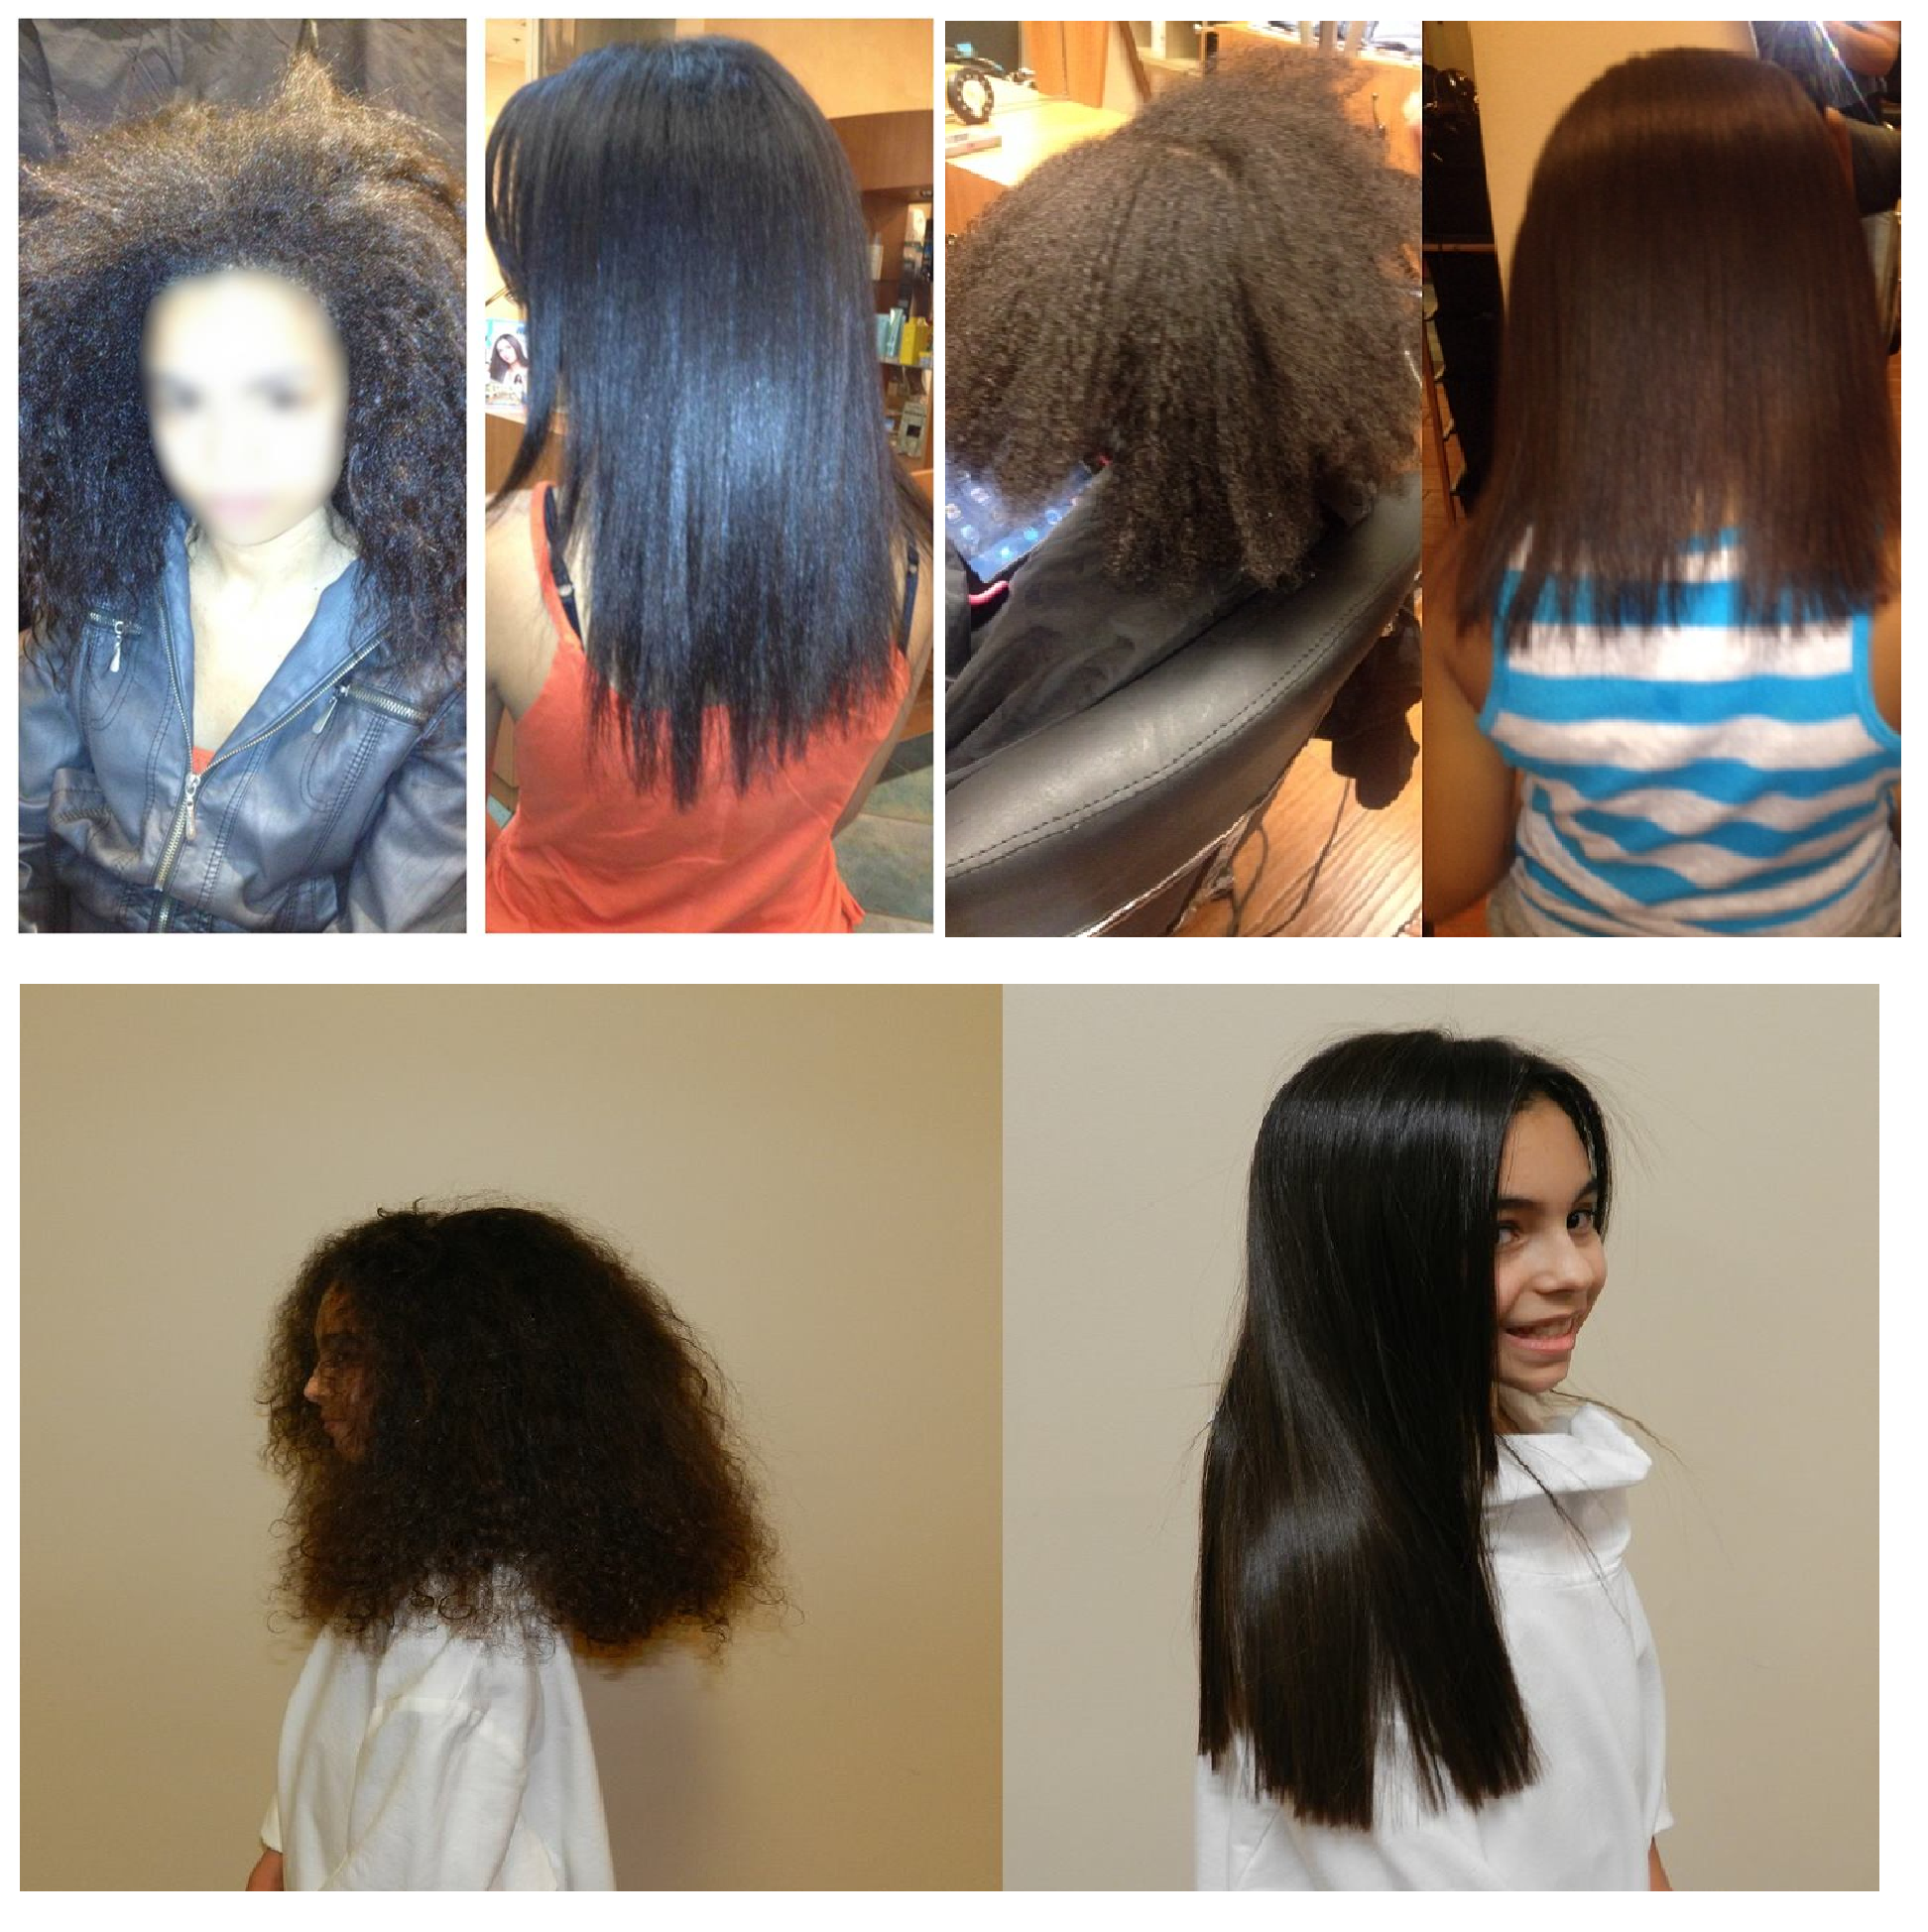 Magic straight perm vs keratin - Magic Sleek Contains No Formaldehyde Methylene Glycol Or Any Harsh Chemicals It